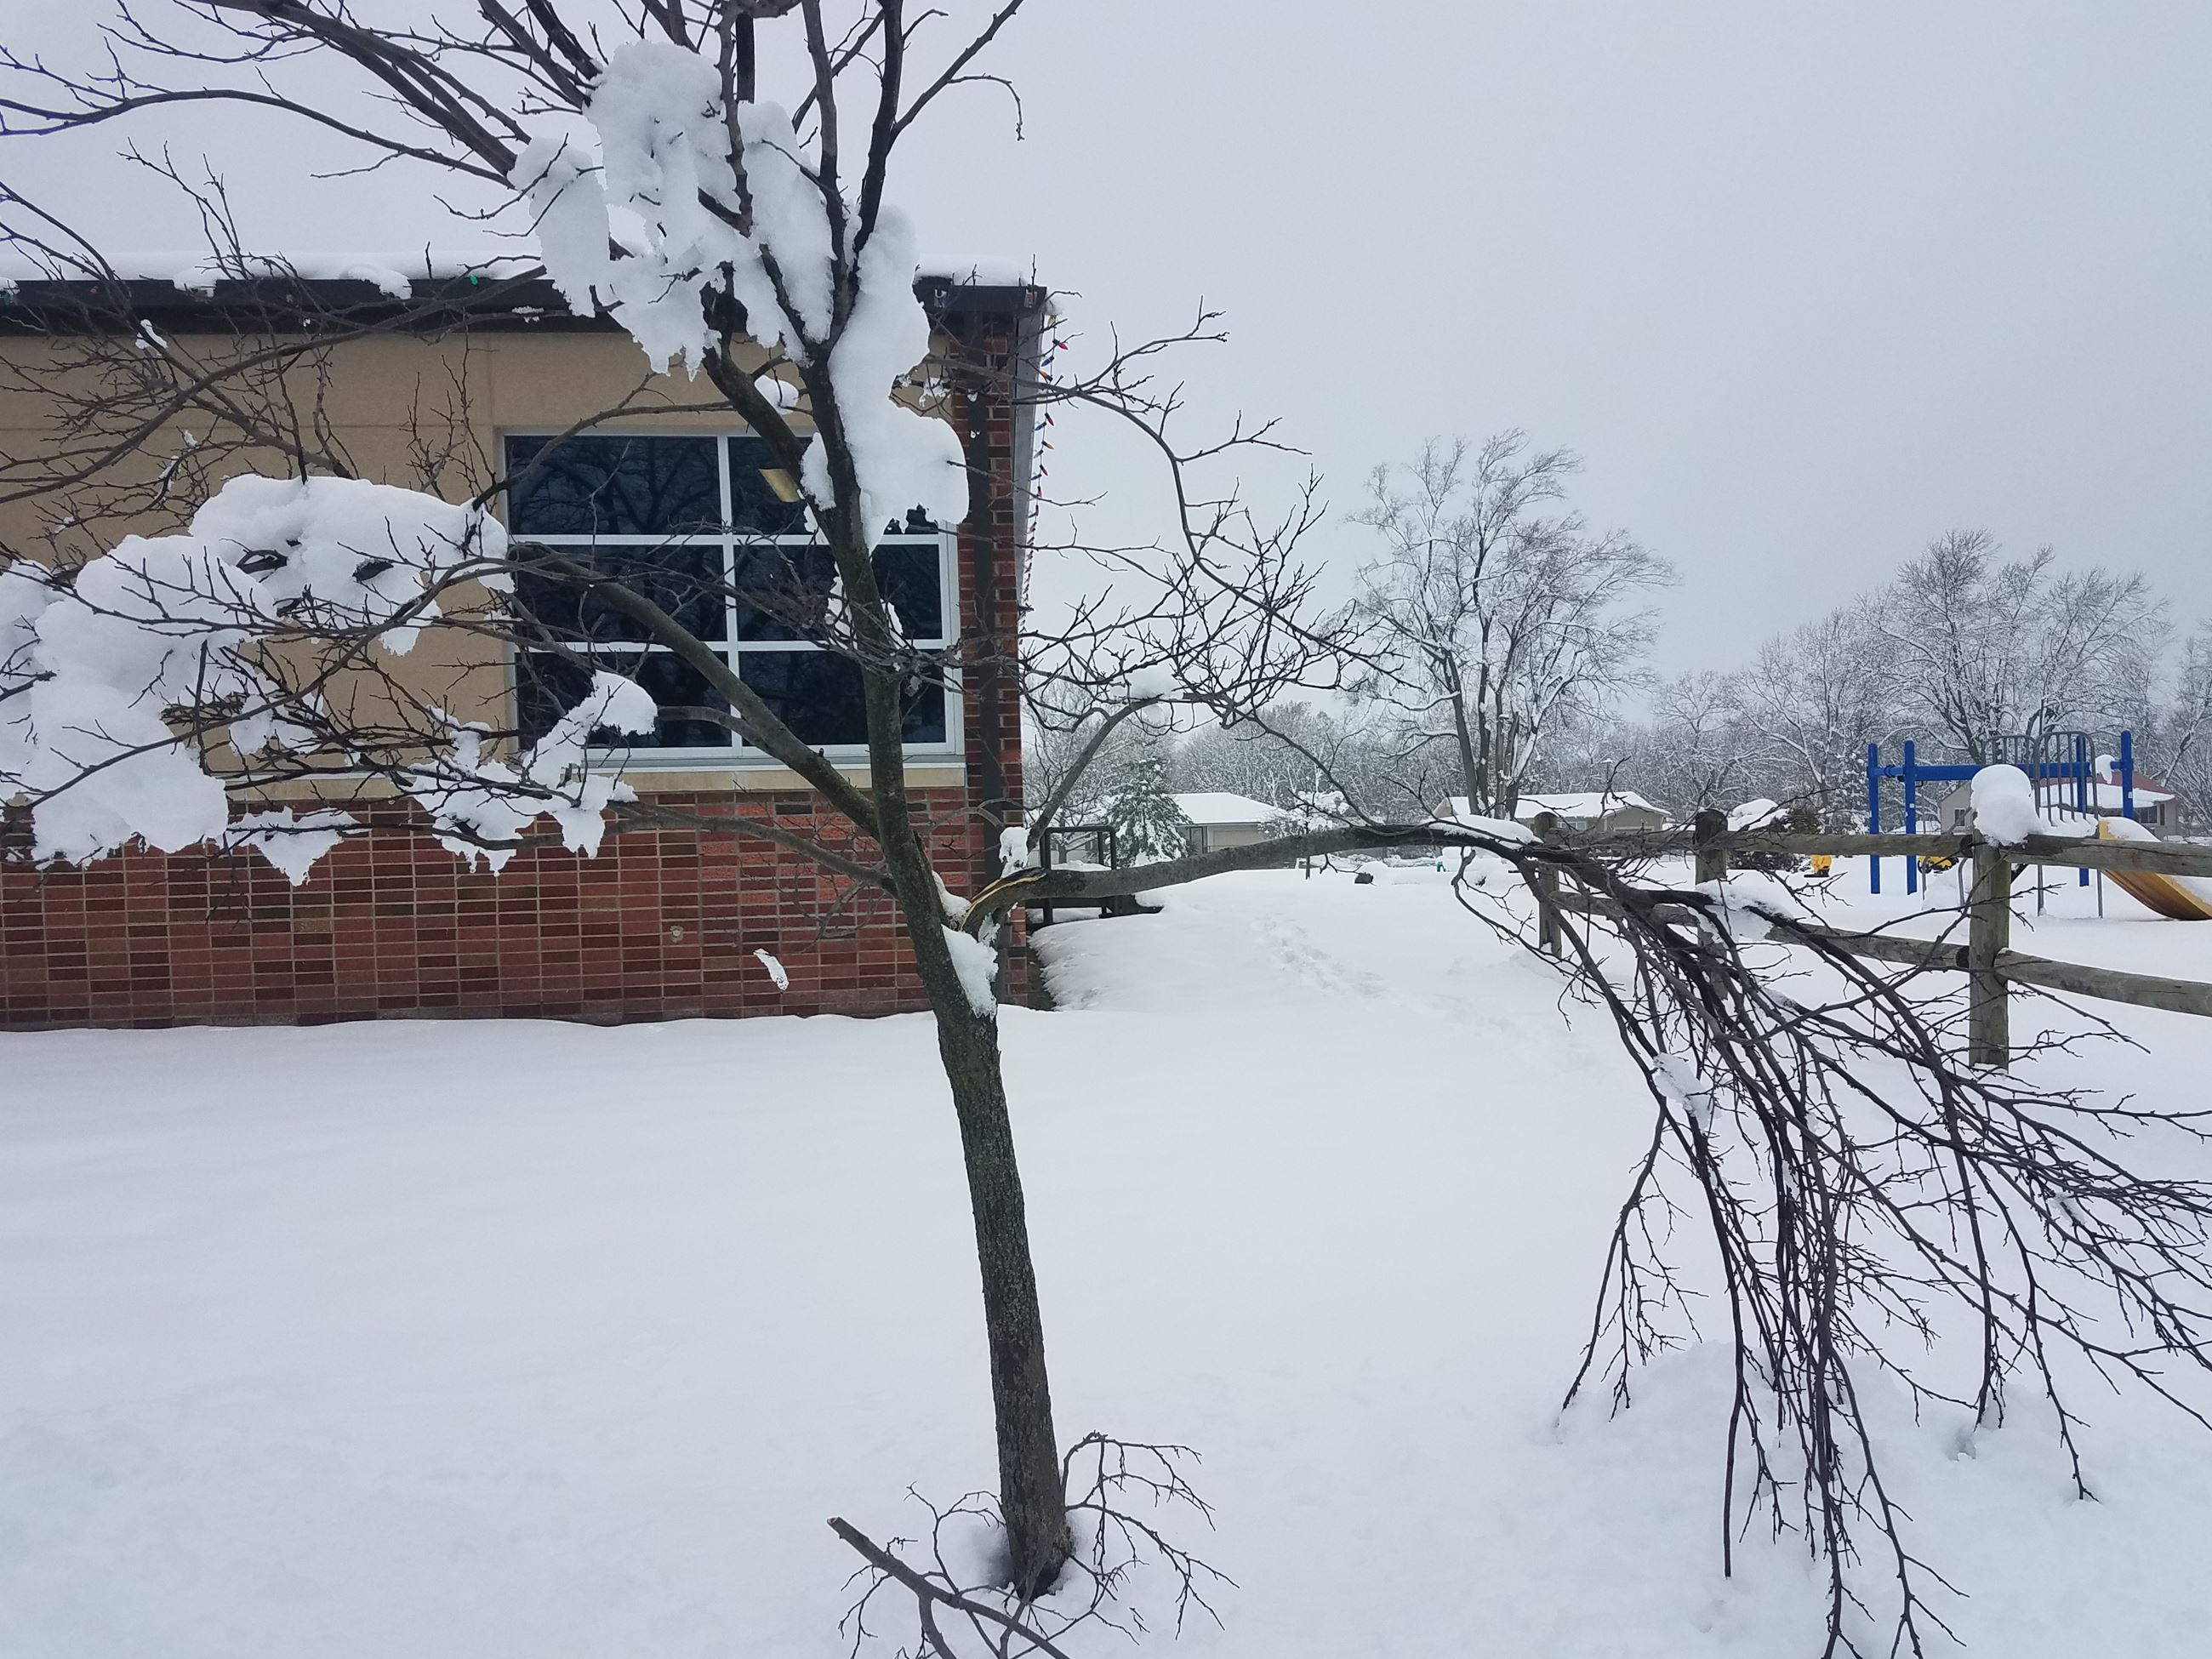 A small tree is snapped after a recent heavy snowfall near City Hall and Friendship Park